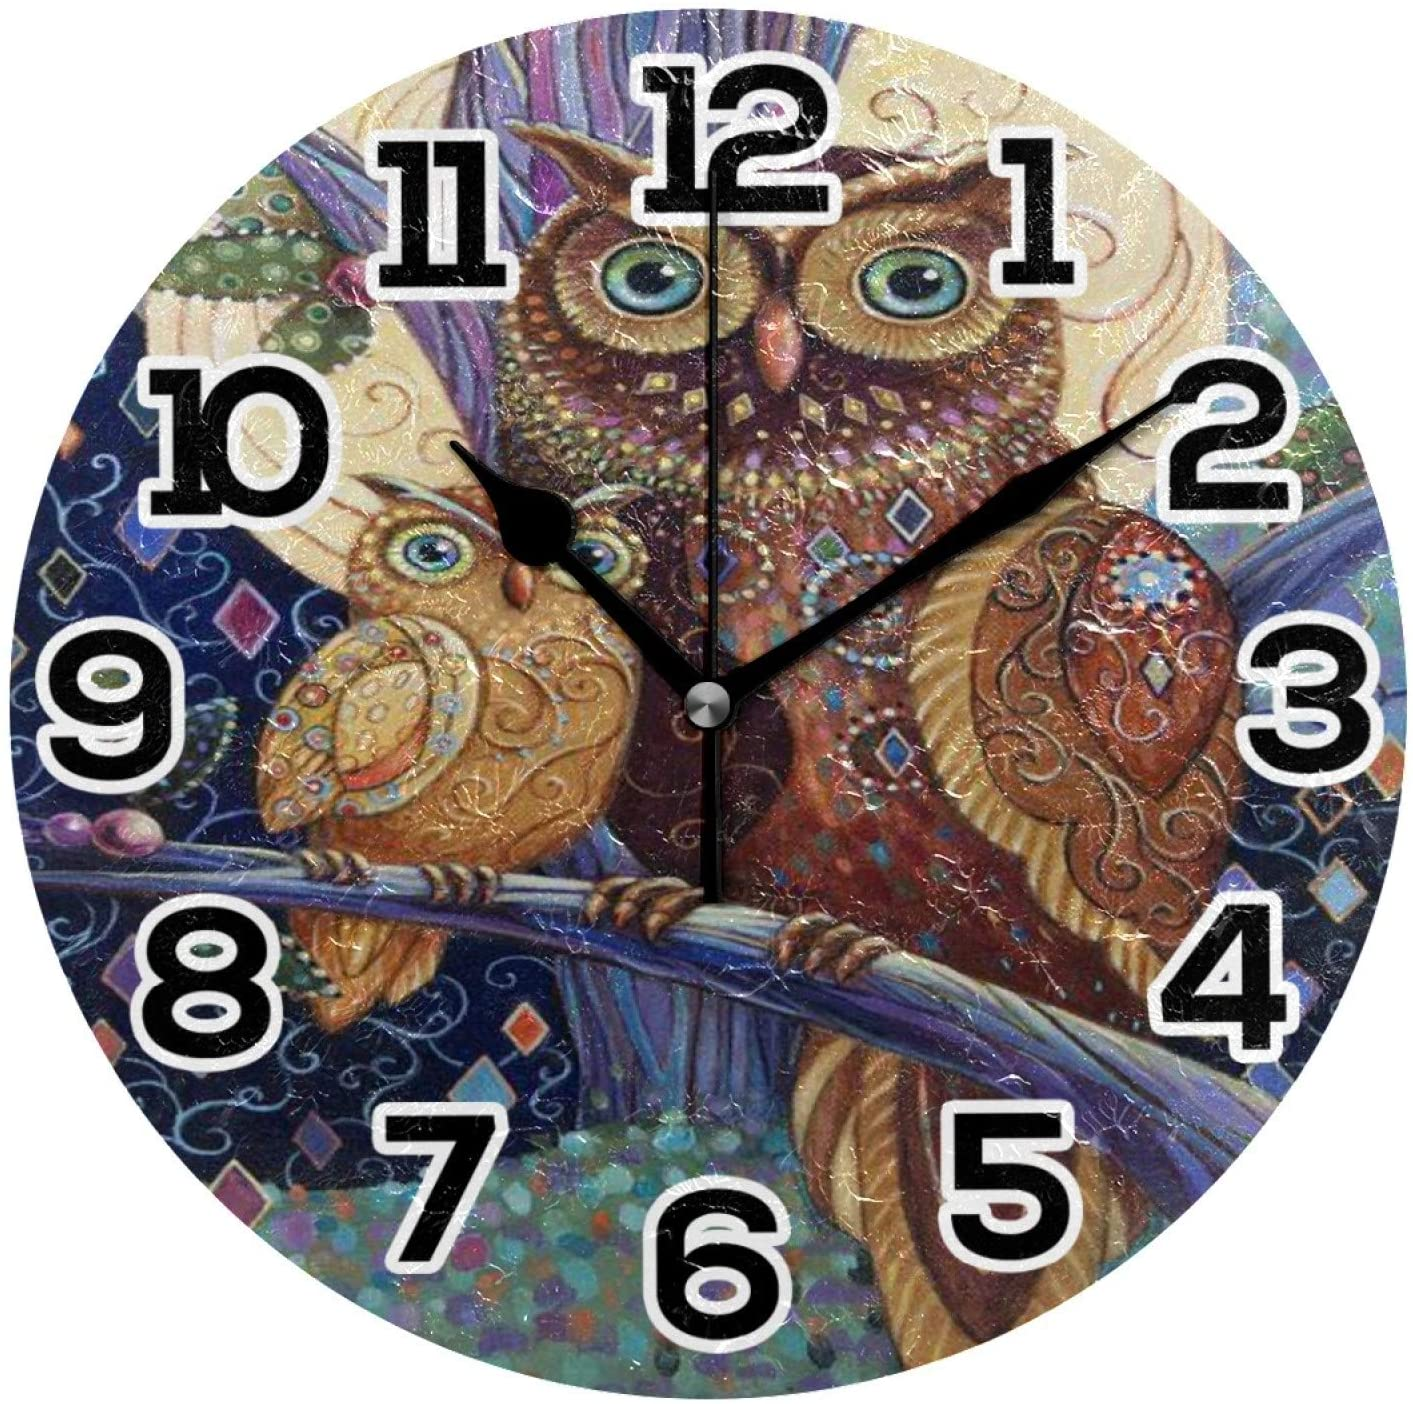 weijin Round Wall Clock 10 Inch Vintage Floral Owl Silent Non Ticking Quartz - Battery Operated Wall Clock, Silent Clocks for Home Decor Living Room, Bathroom, Office